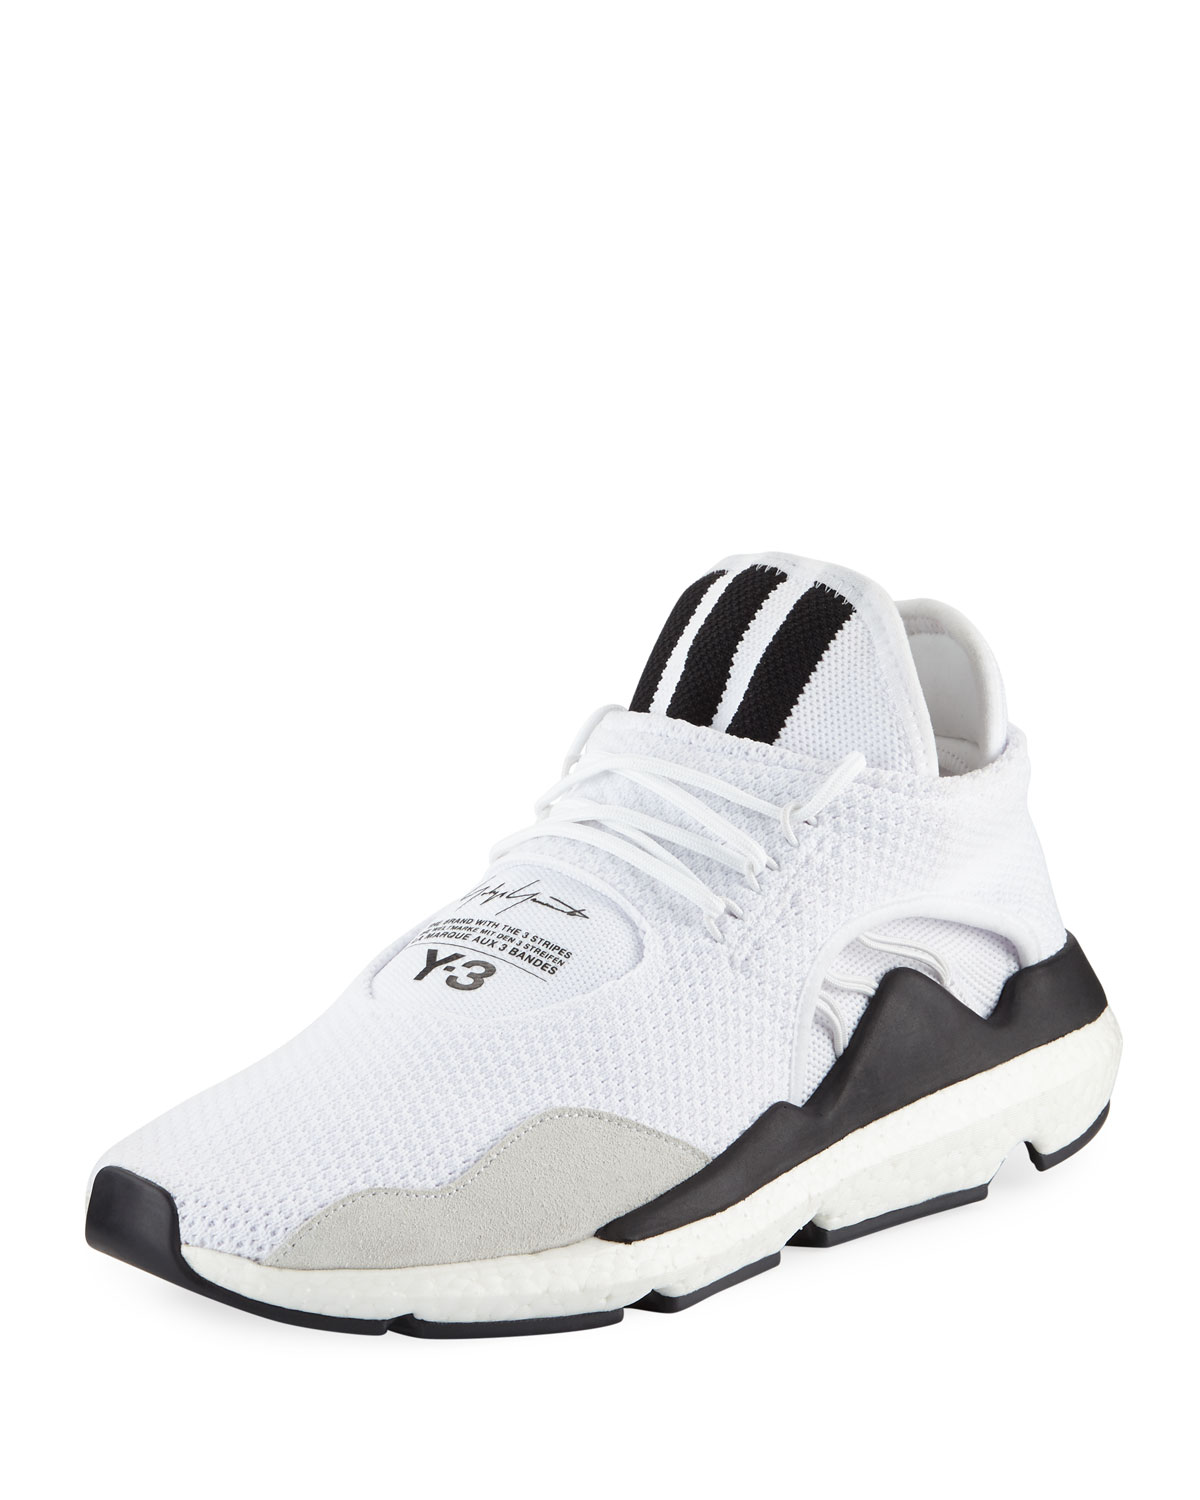 cheaper a1048 ef15d Y-3Mens Saikou Boost Prime-Knit Sneakers